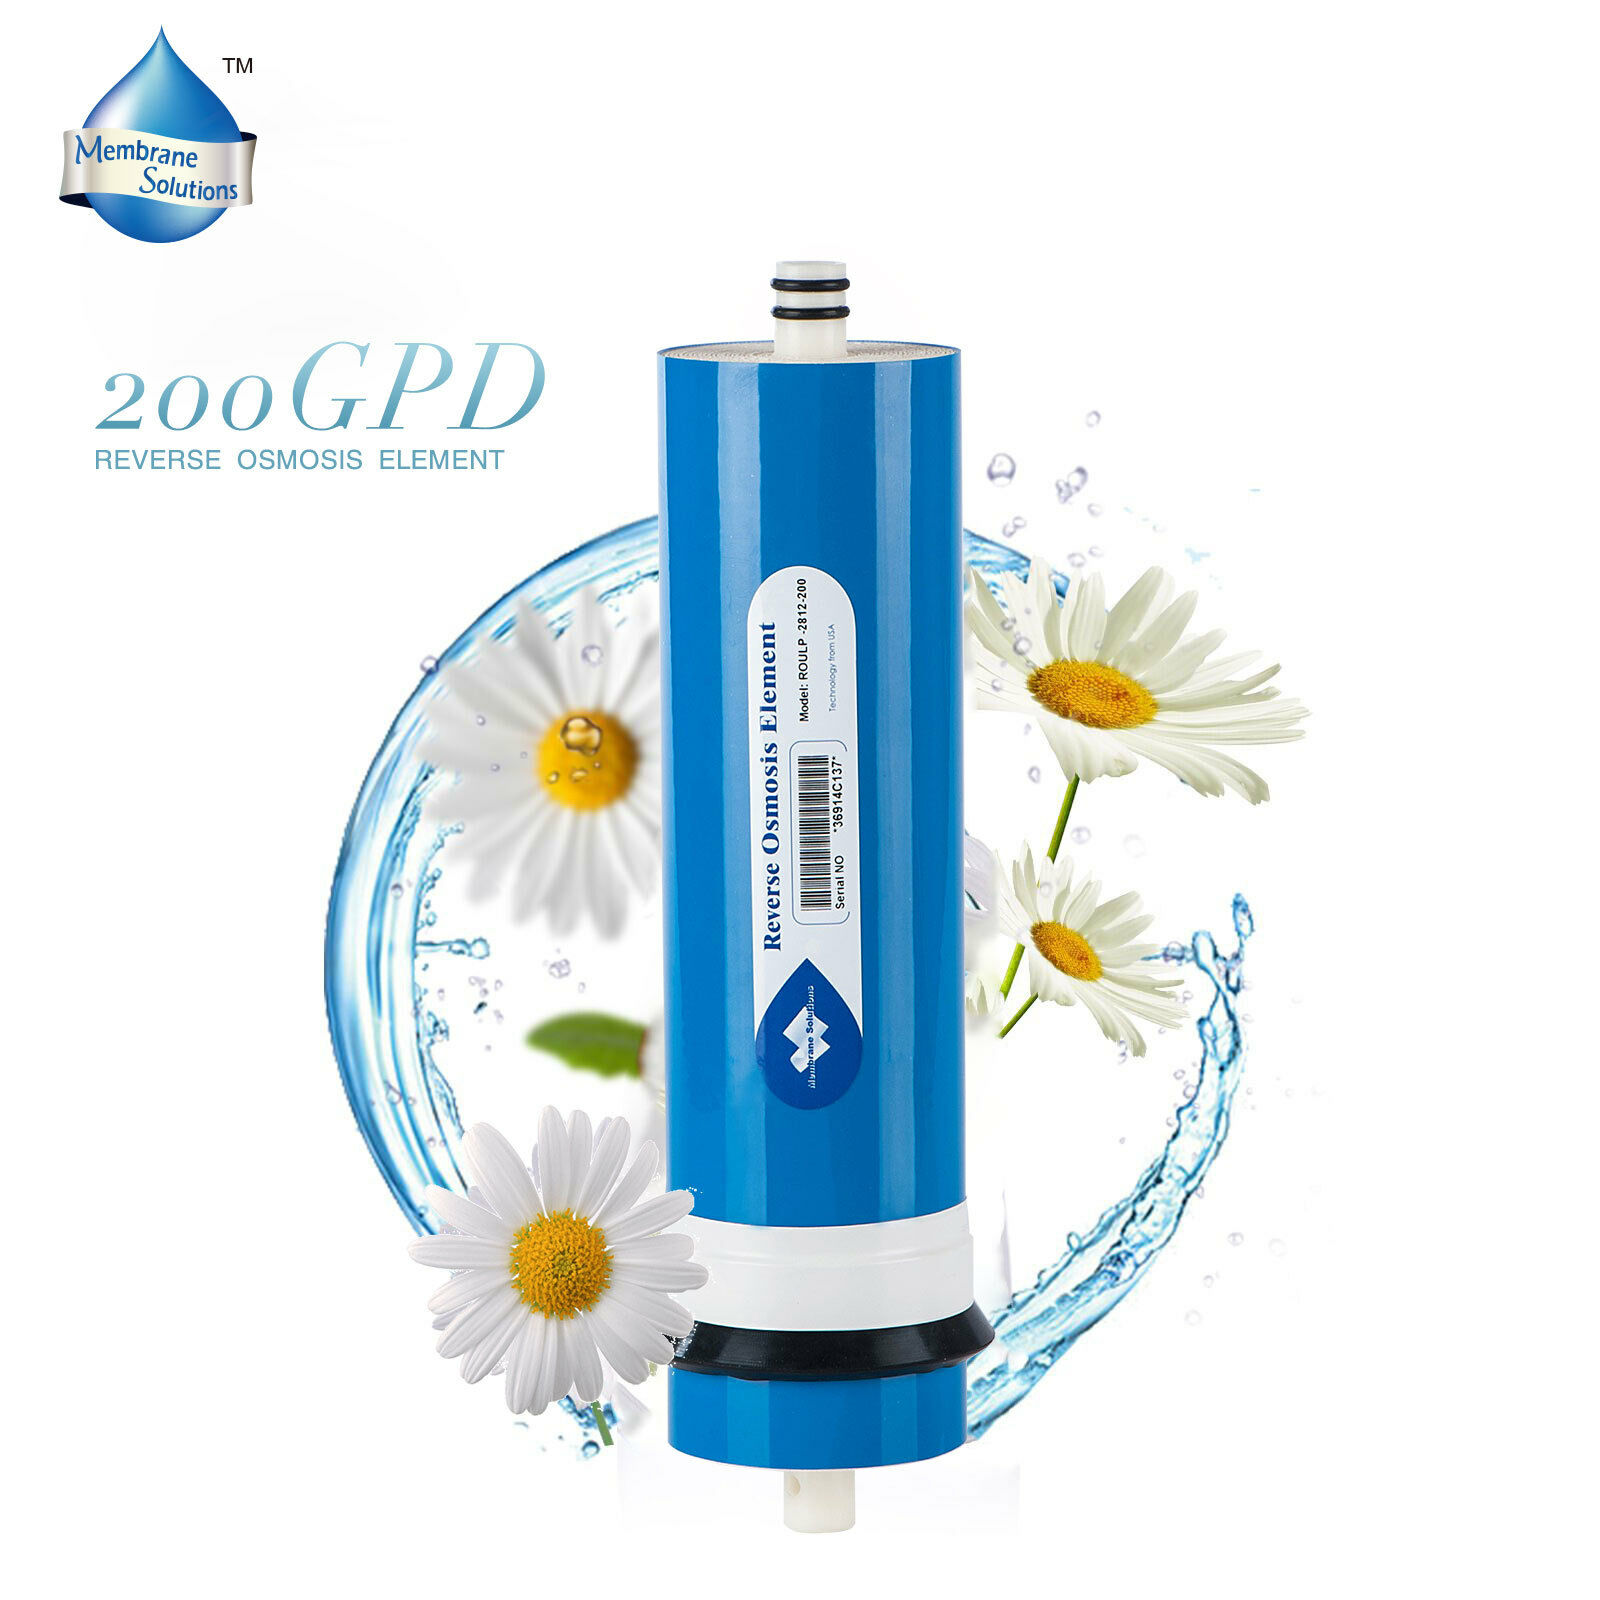 RO Reverse Osmosis Water Filter System 200 GPD Aquarium reef Portable DI Water